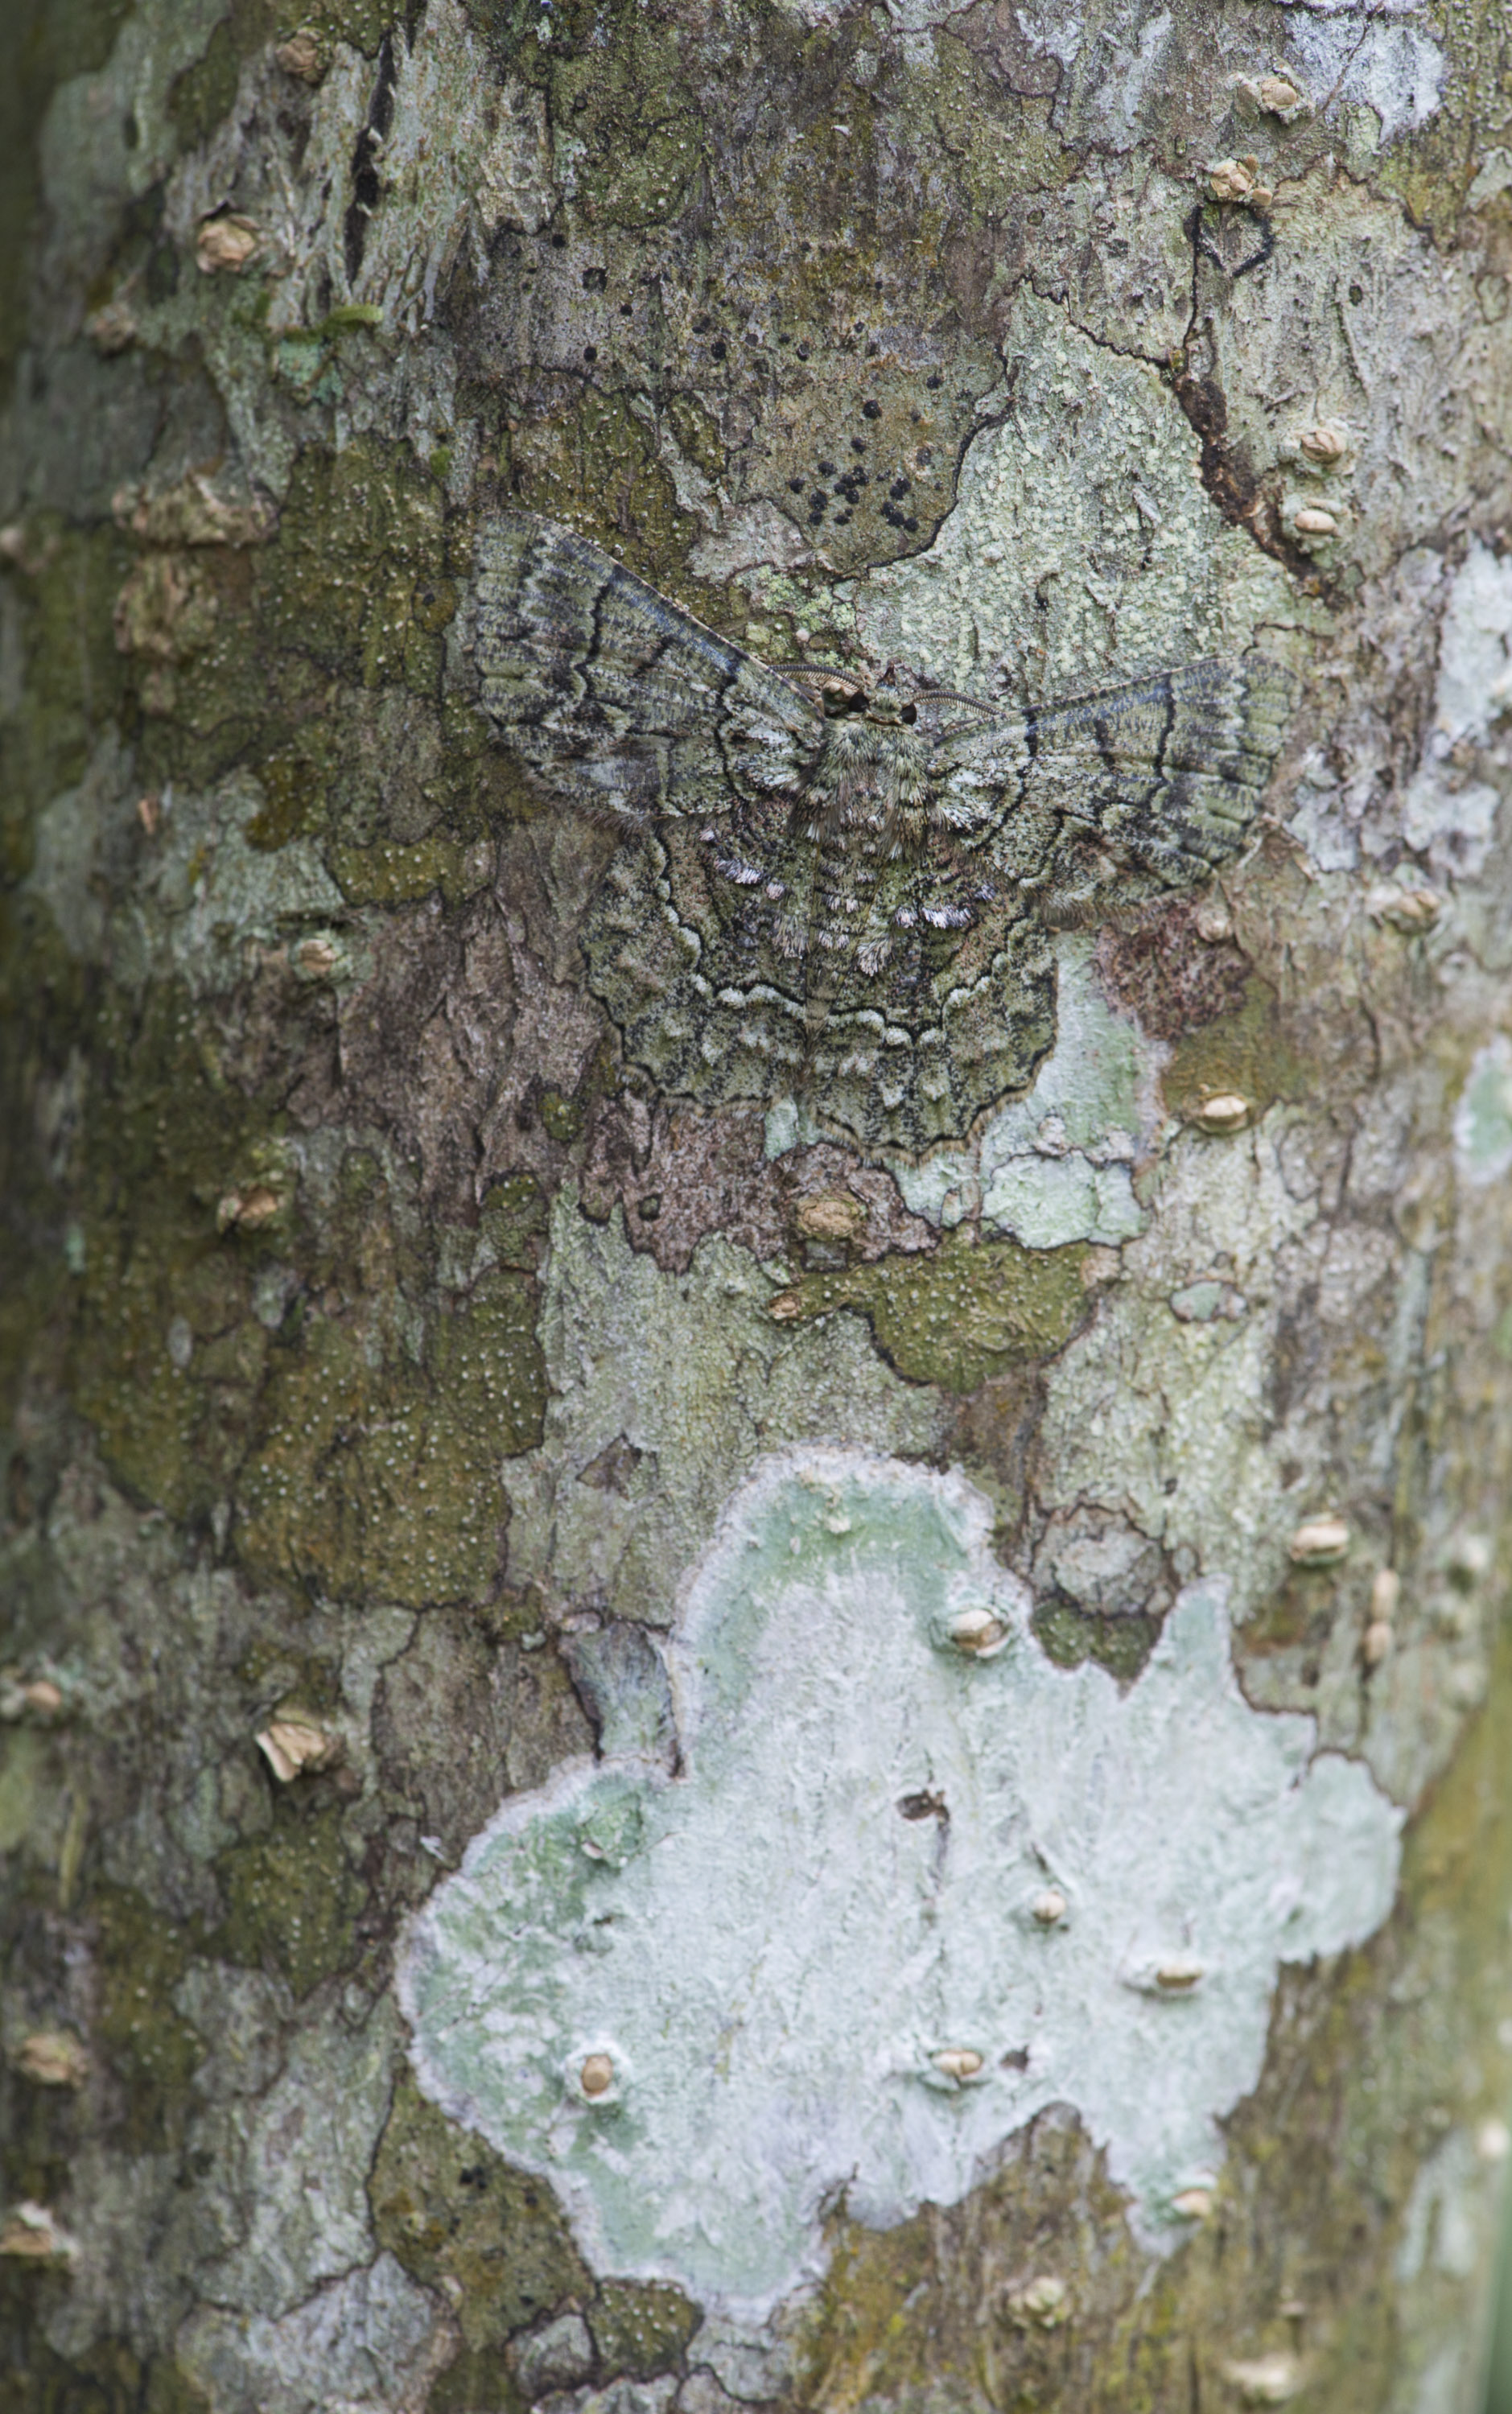 Camouflaged moth.